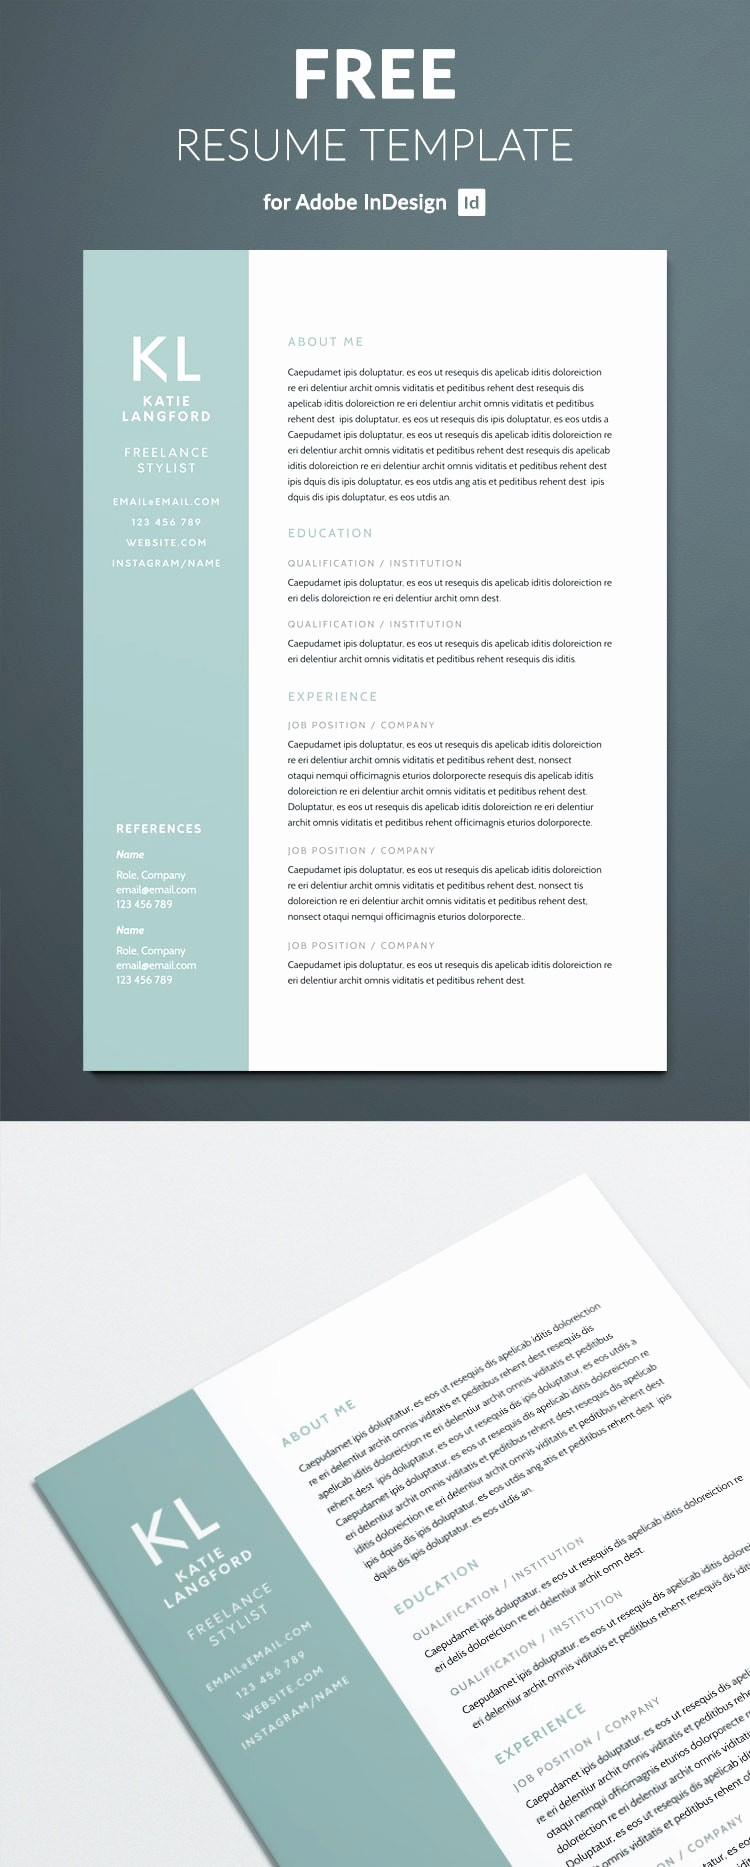 Free Resume Templates and Downloads Lovely Modern Resume Template for Indesign